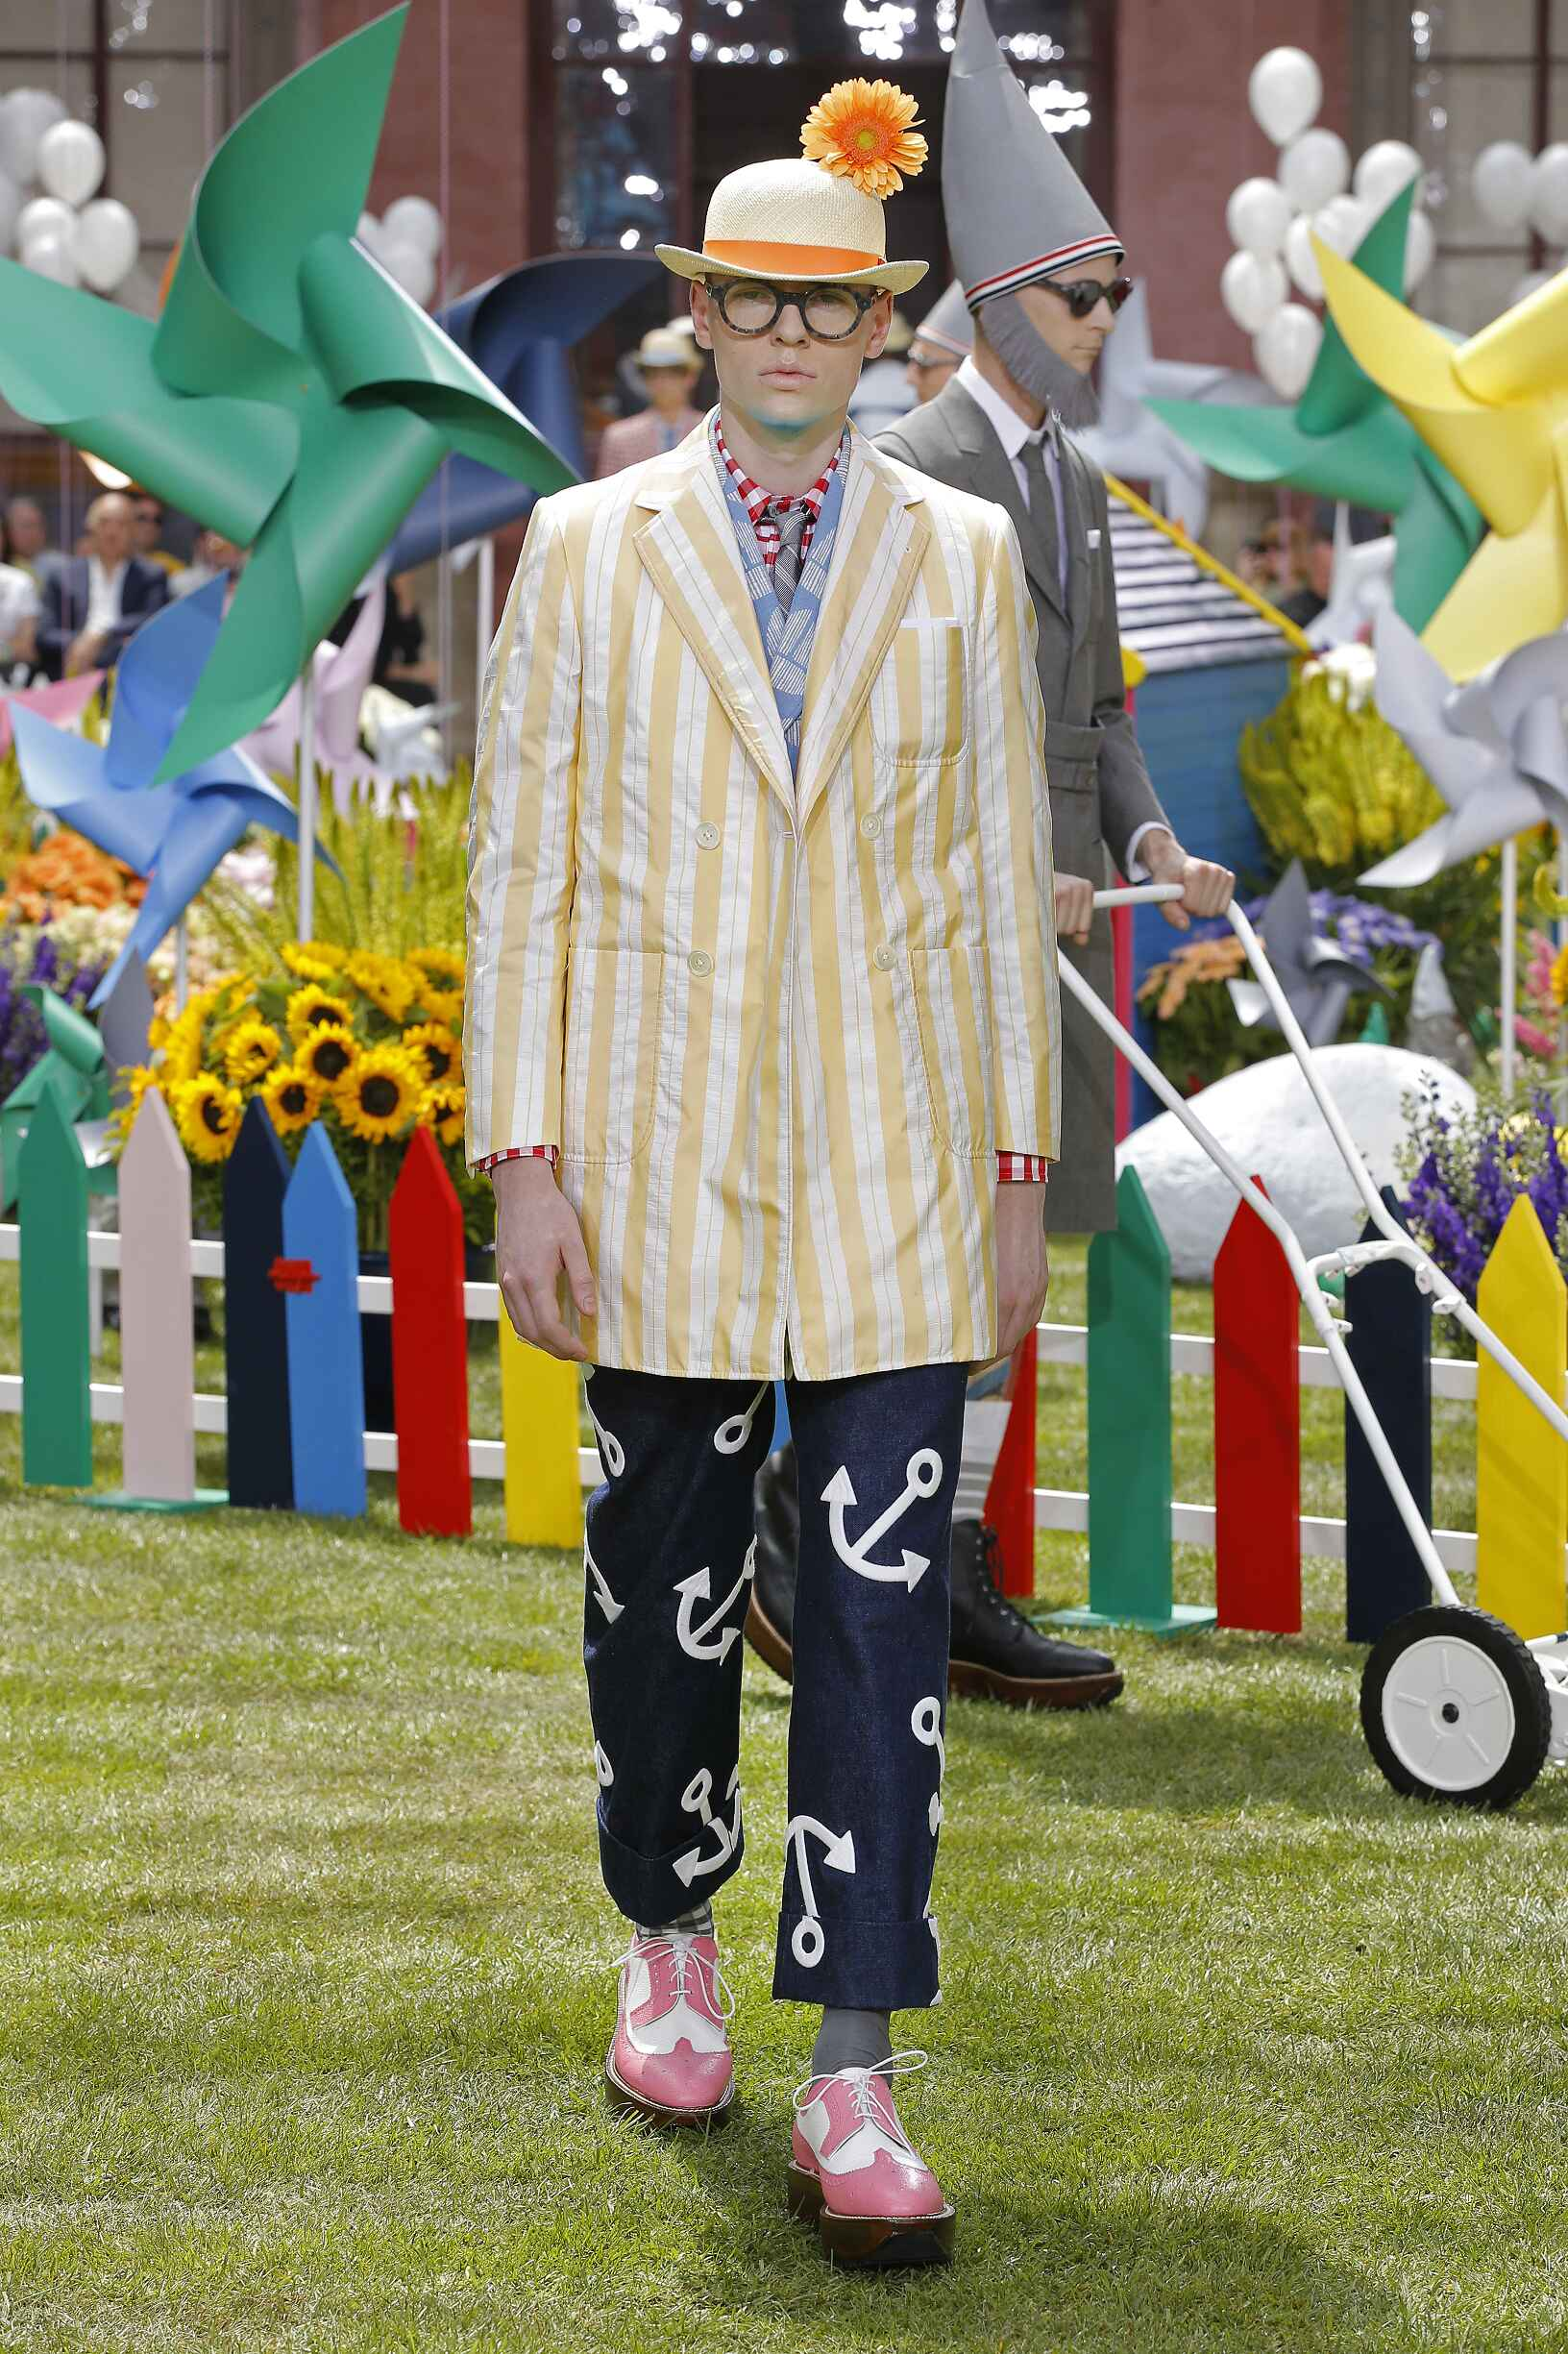 SS 2019 Thom Browne Fashion Show Paris Fashion Week